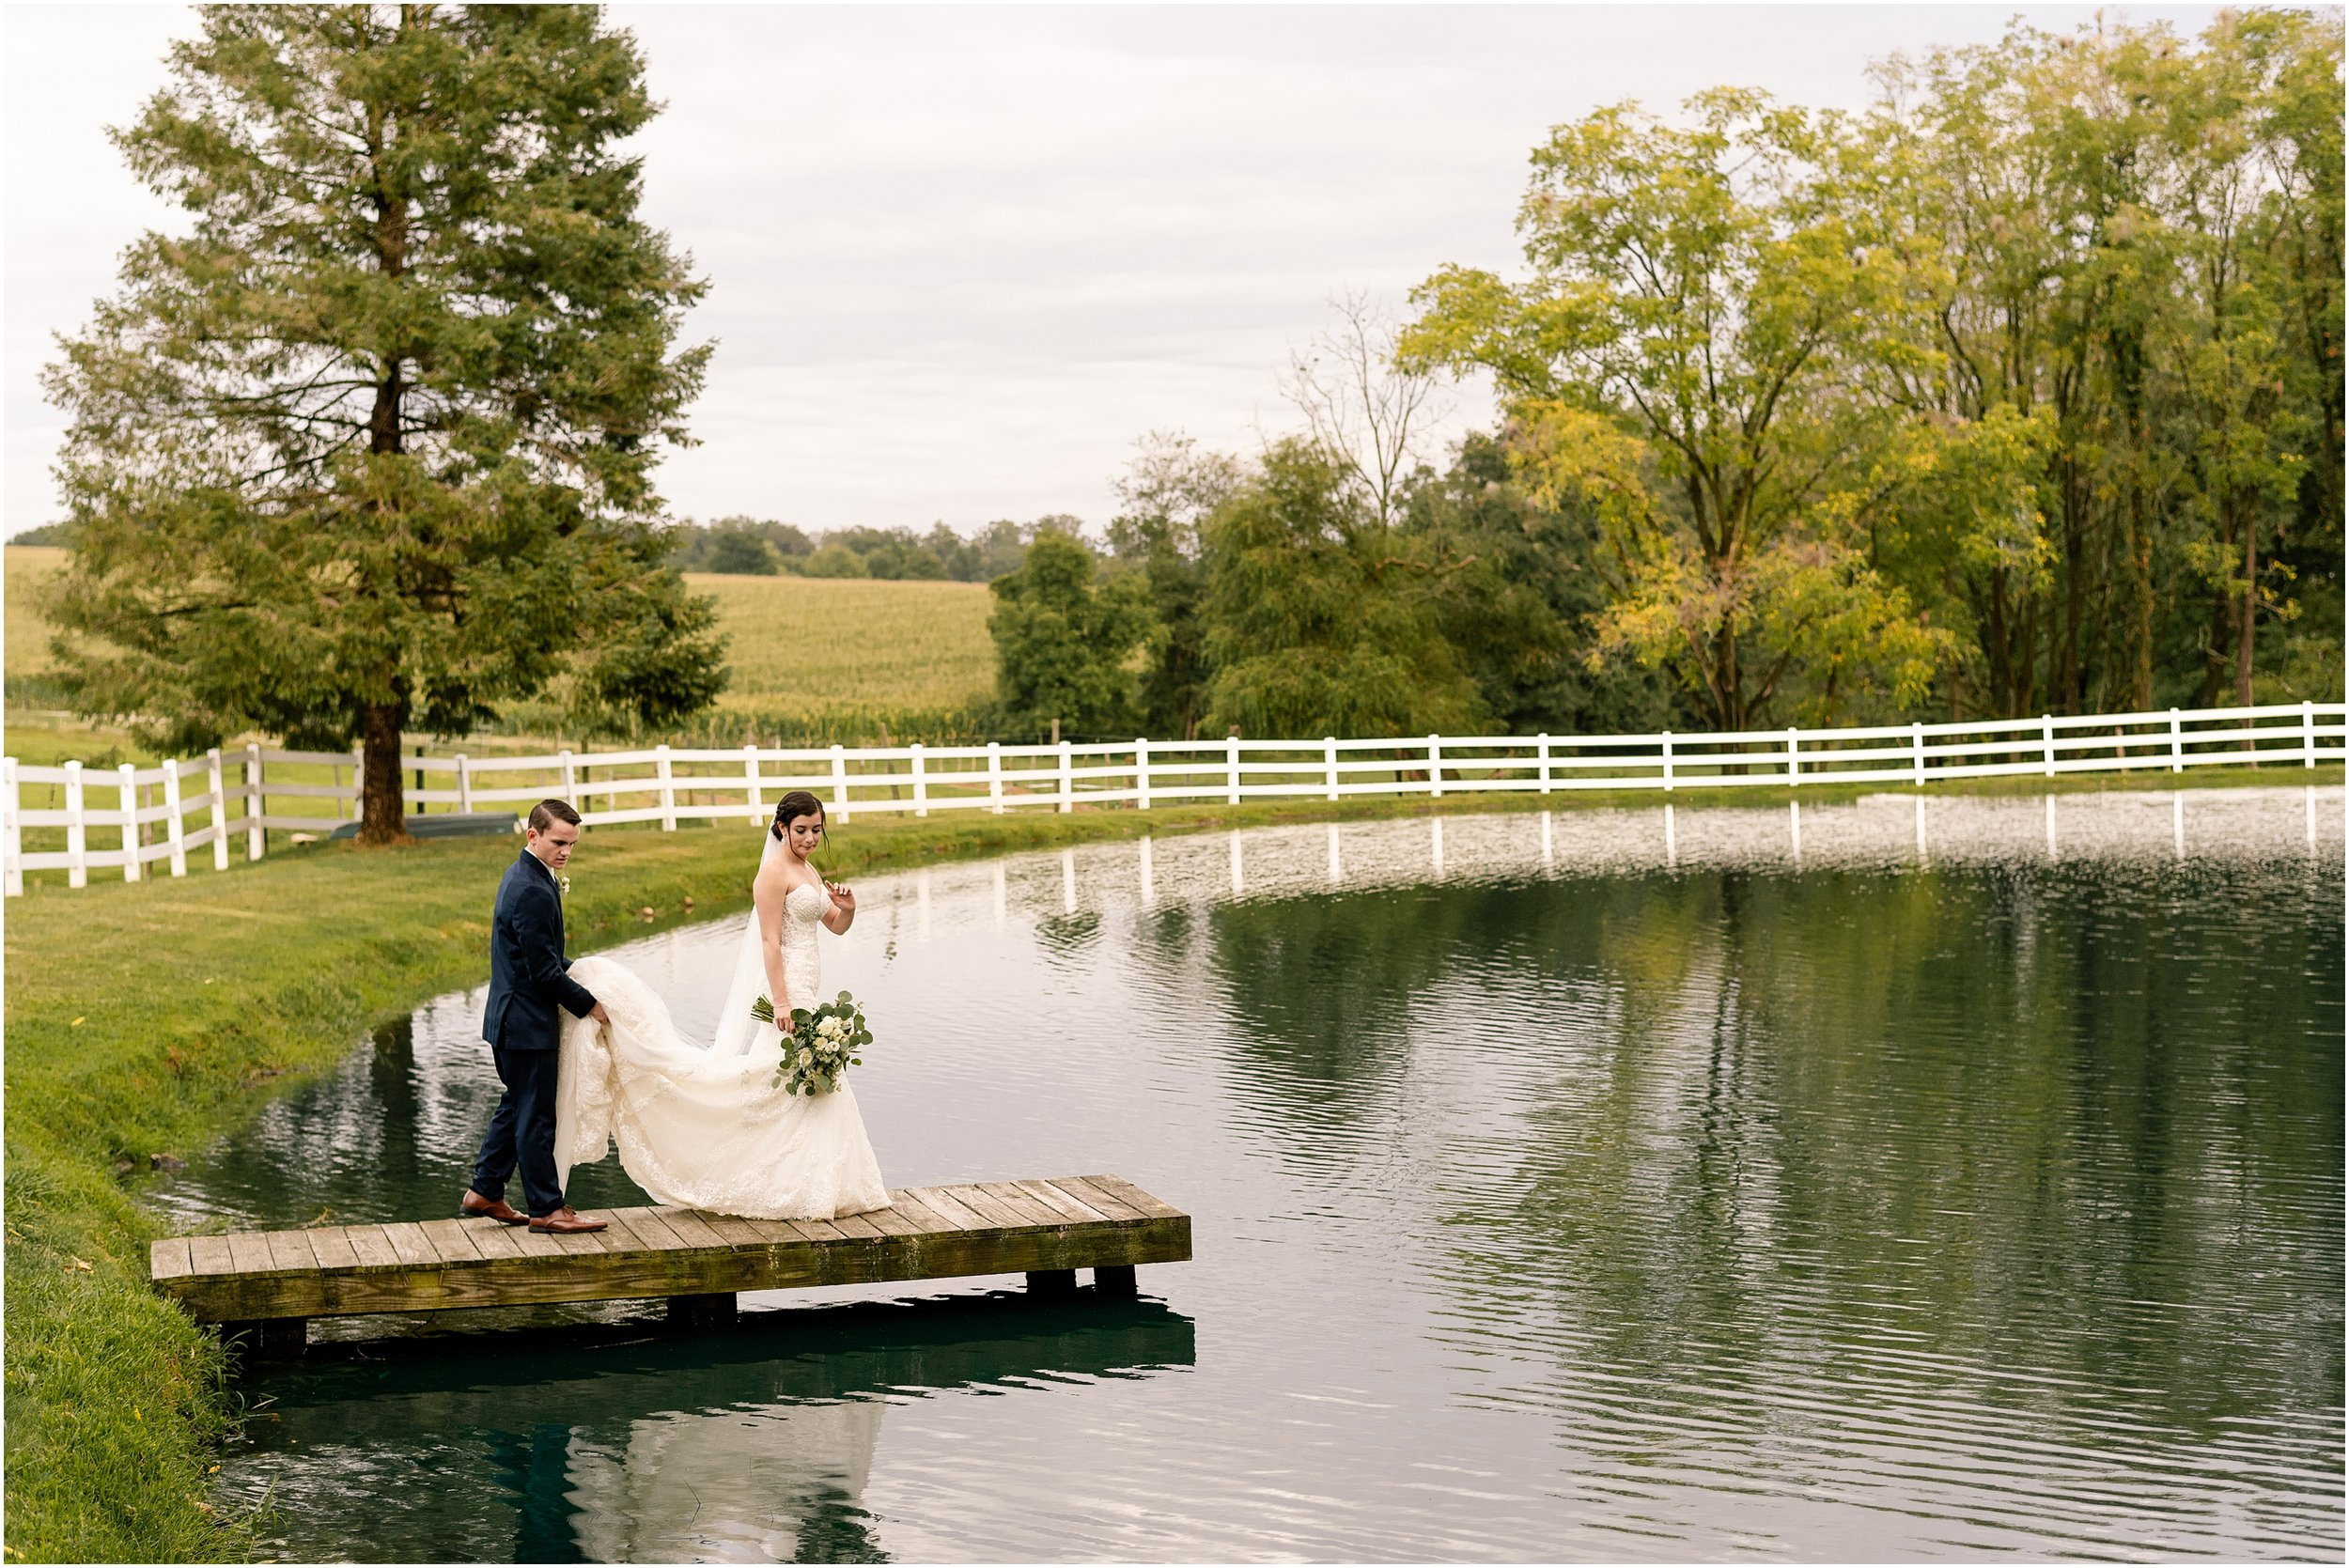 hannah leigh photography Pond View Farm Wedding White Hall MD_3658.jpg